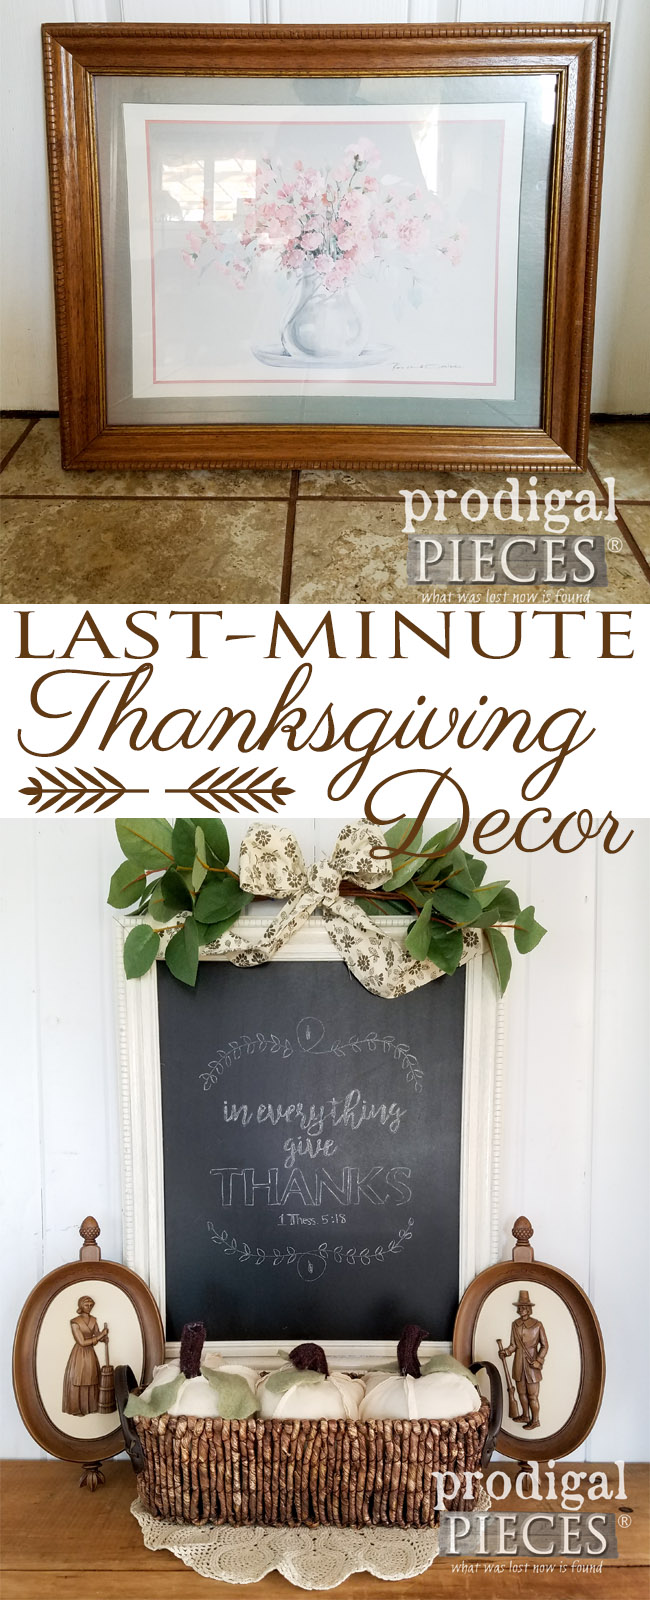 Need to decorate quick for Thanksgiving? Check out how easy this last-minute Thanksgiving decor can be using household items. Full tutorial and free chalkboard art too! Get the details at Prodigal Pieces | prodigalpieces.com